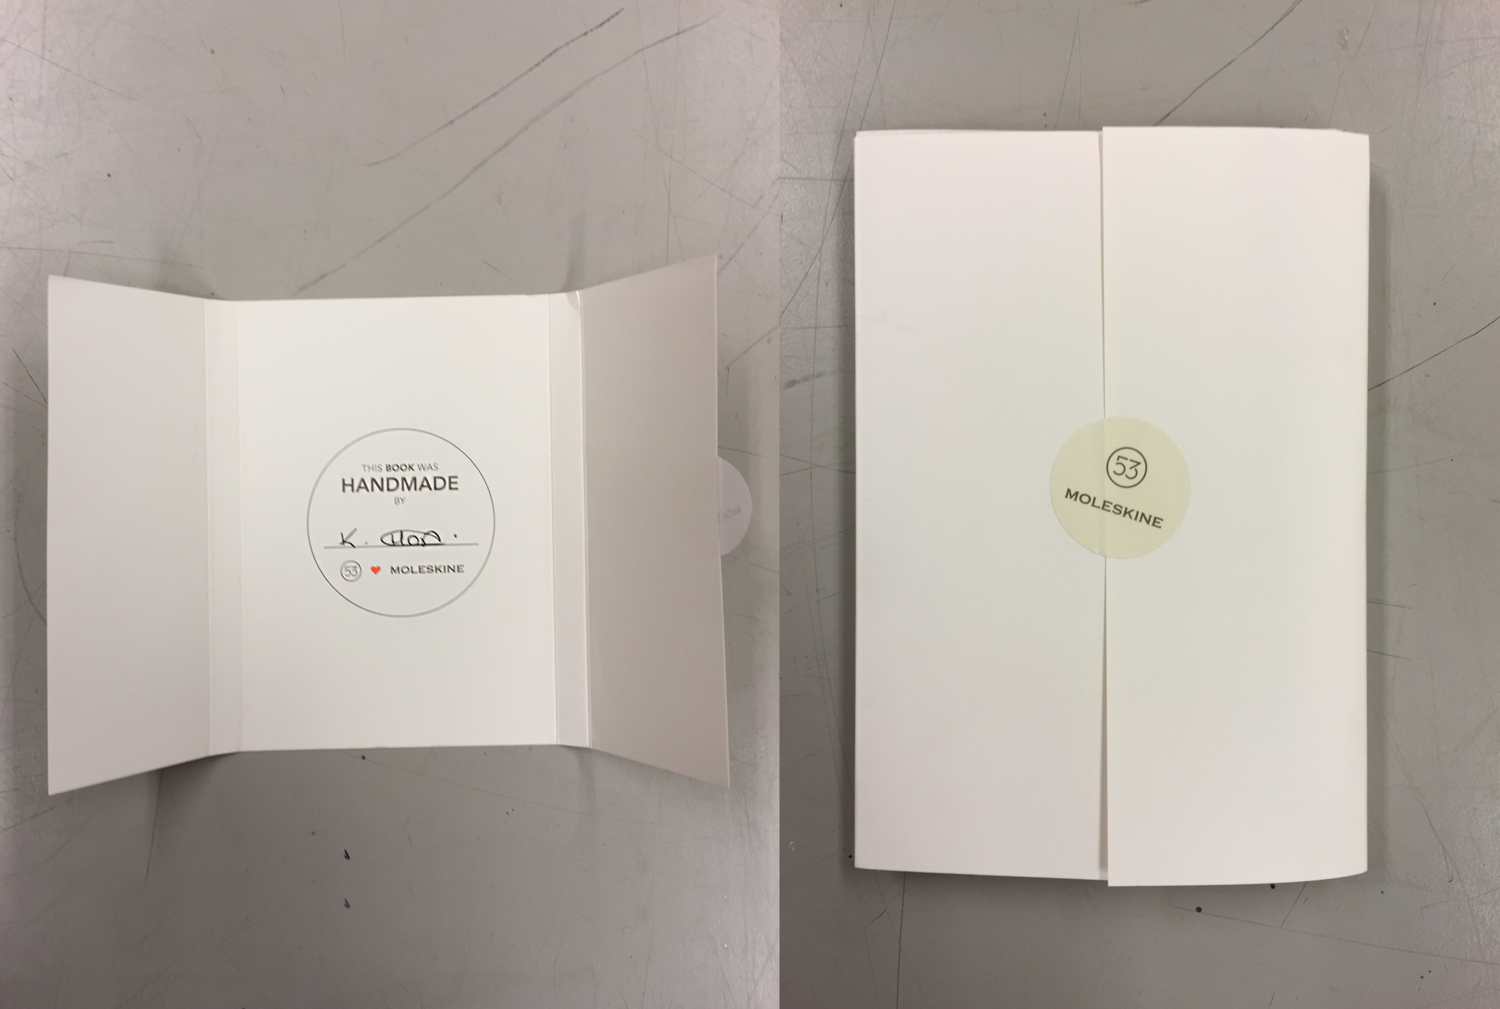 The book came wrapped in this packaging and was signed by the person who handmade it.  Click or Tap to enlarge.